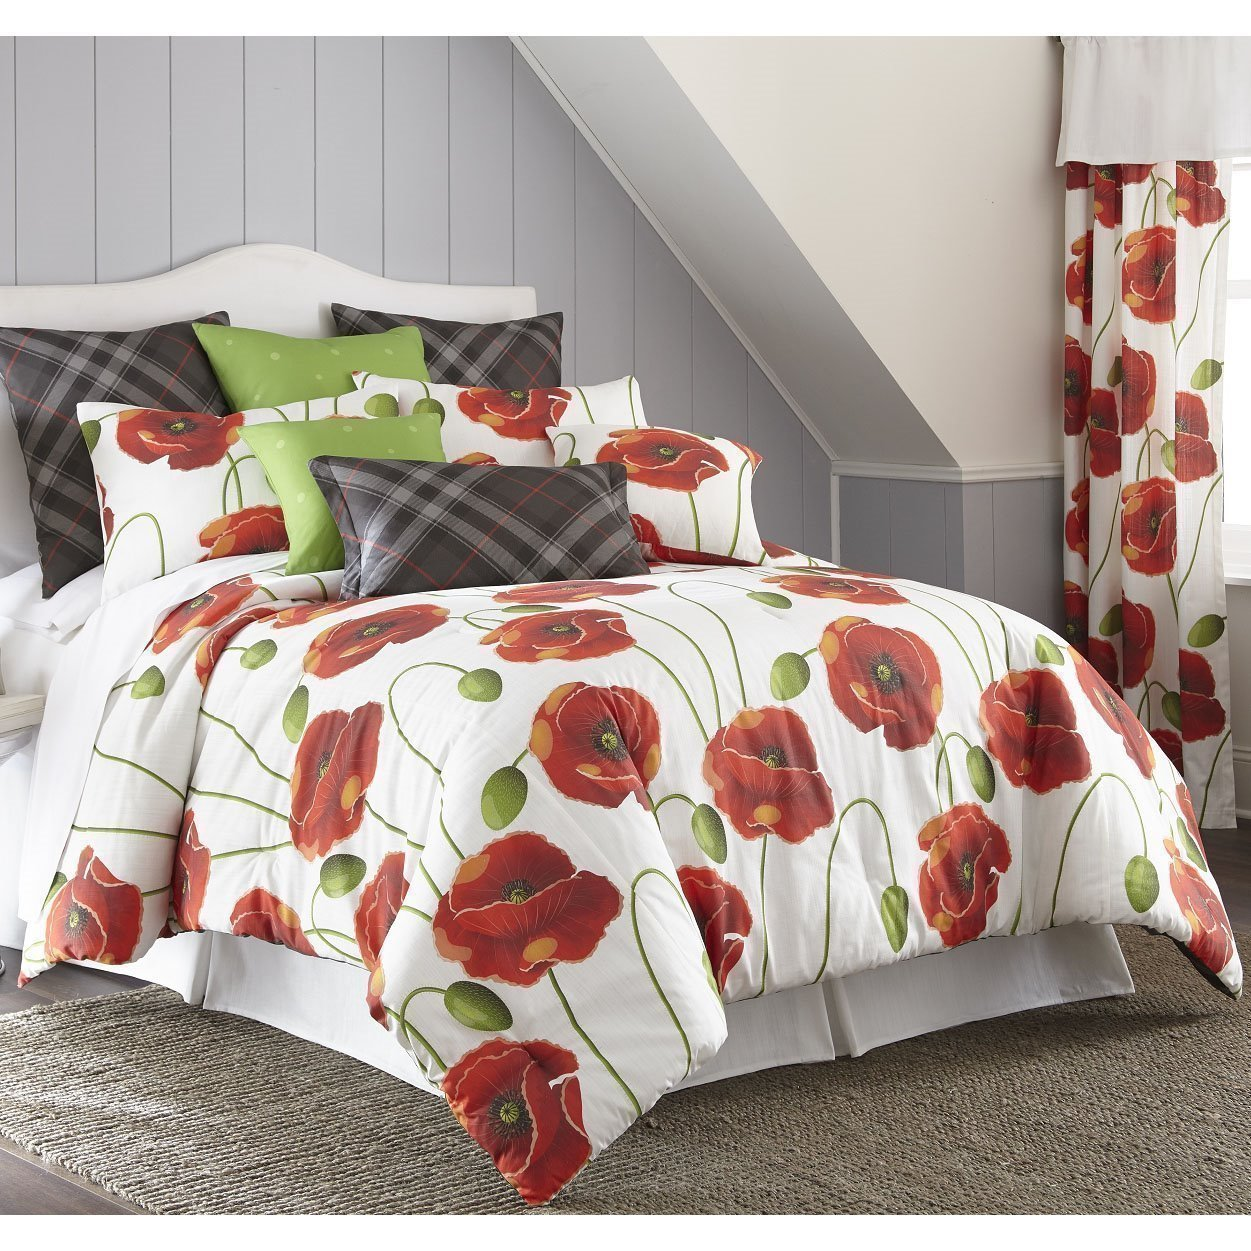 Poppy Plaid Comforter Set Queen Size